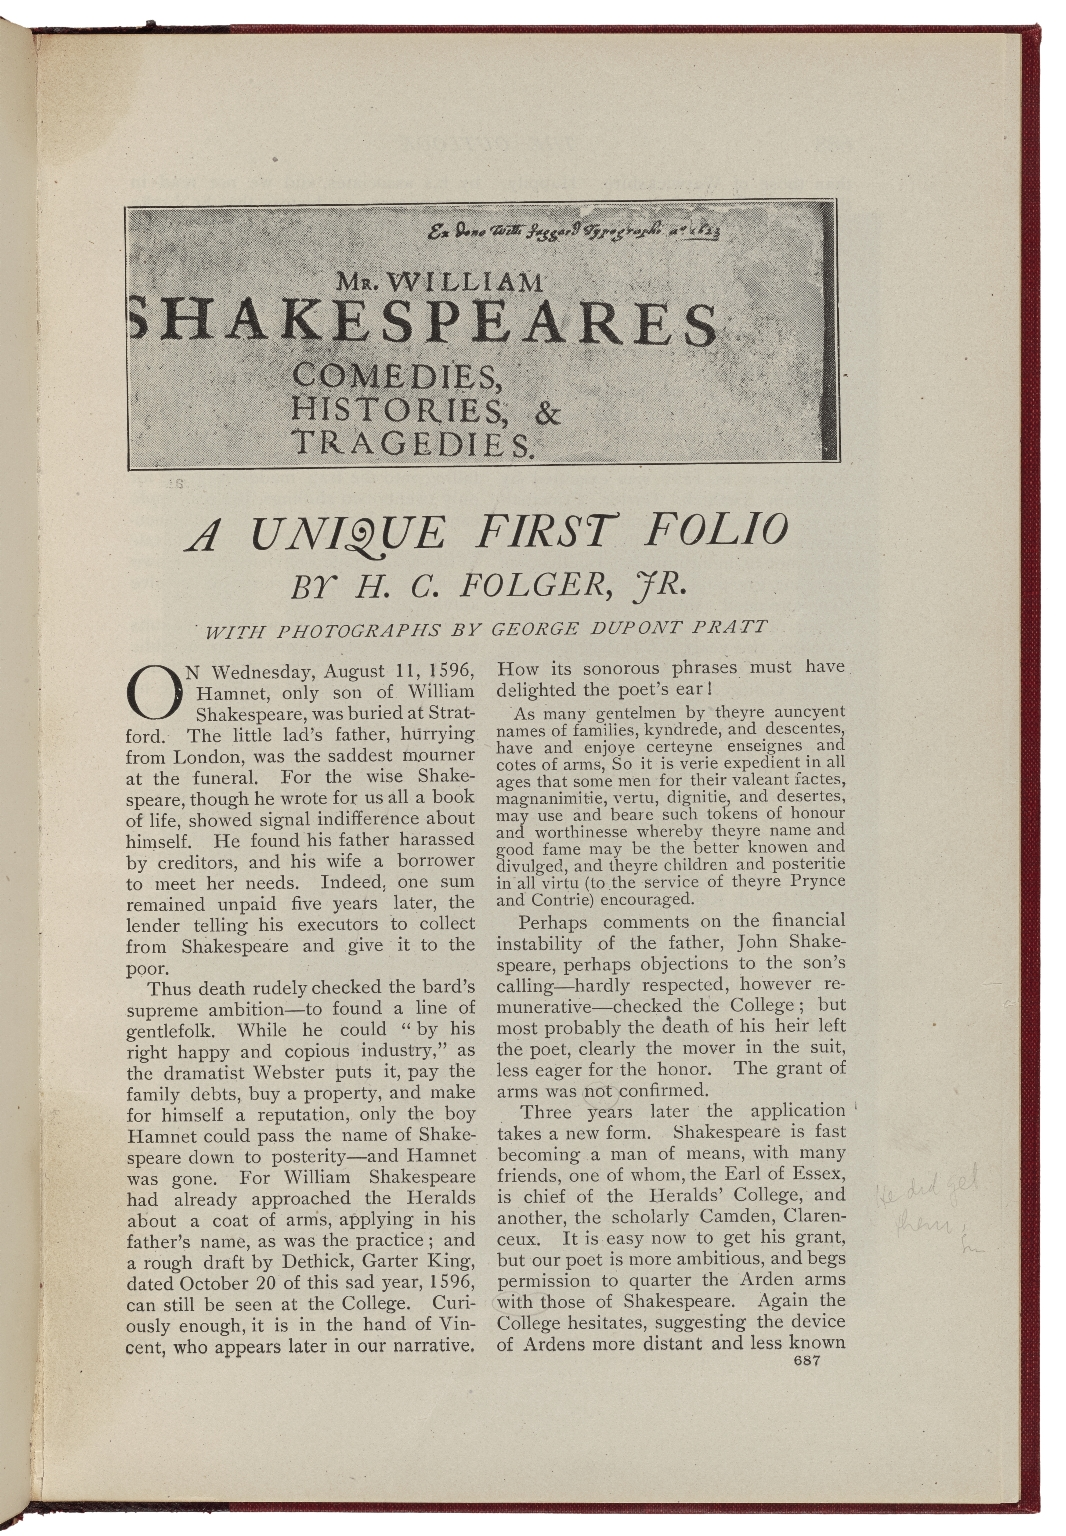 A unique first folio / by H.C. Folger, Jr. ; with photographs by George Dupont Pratt.